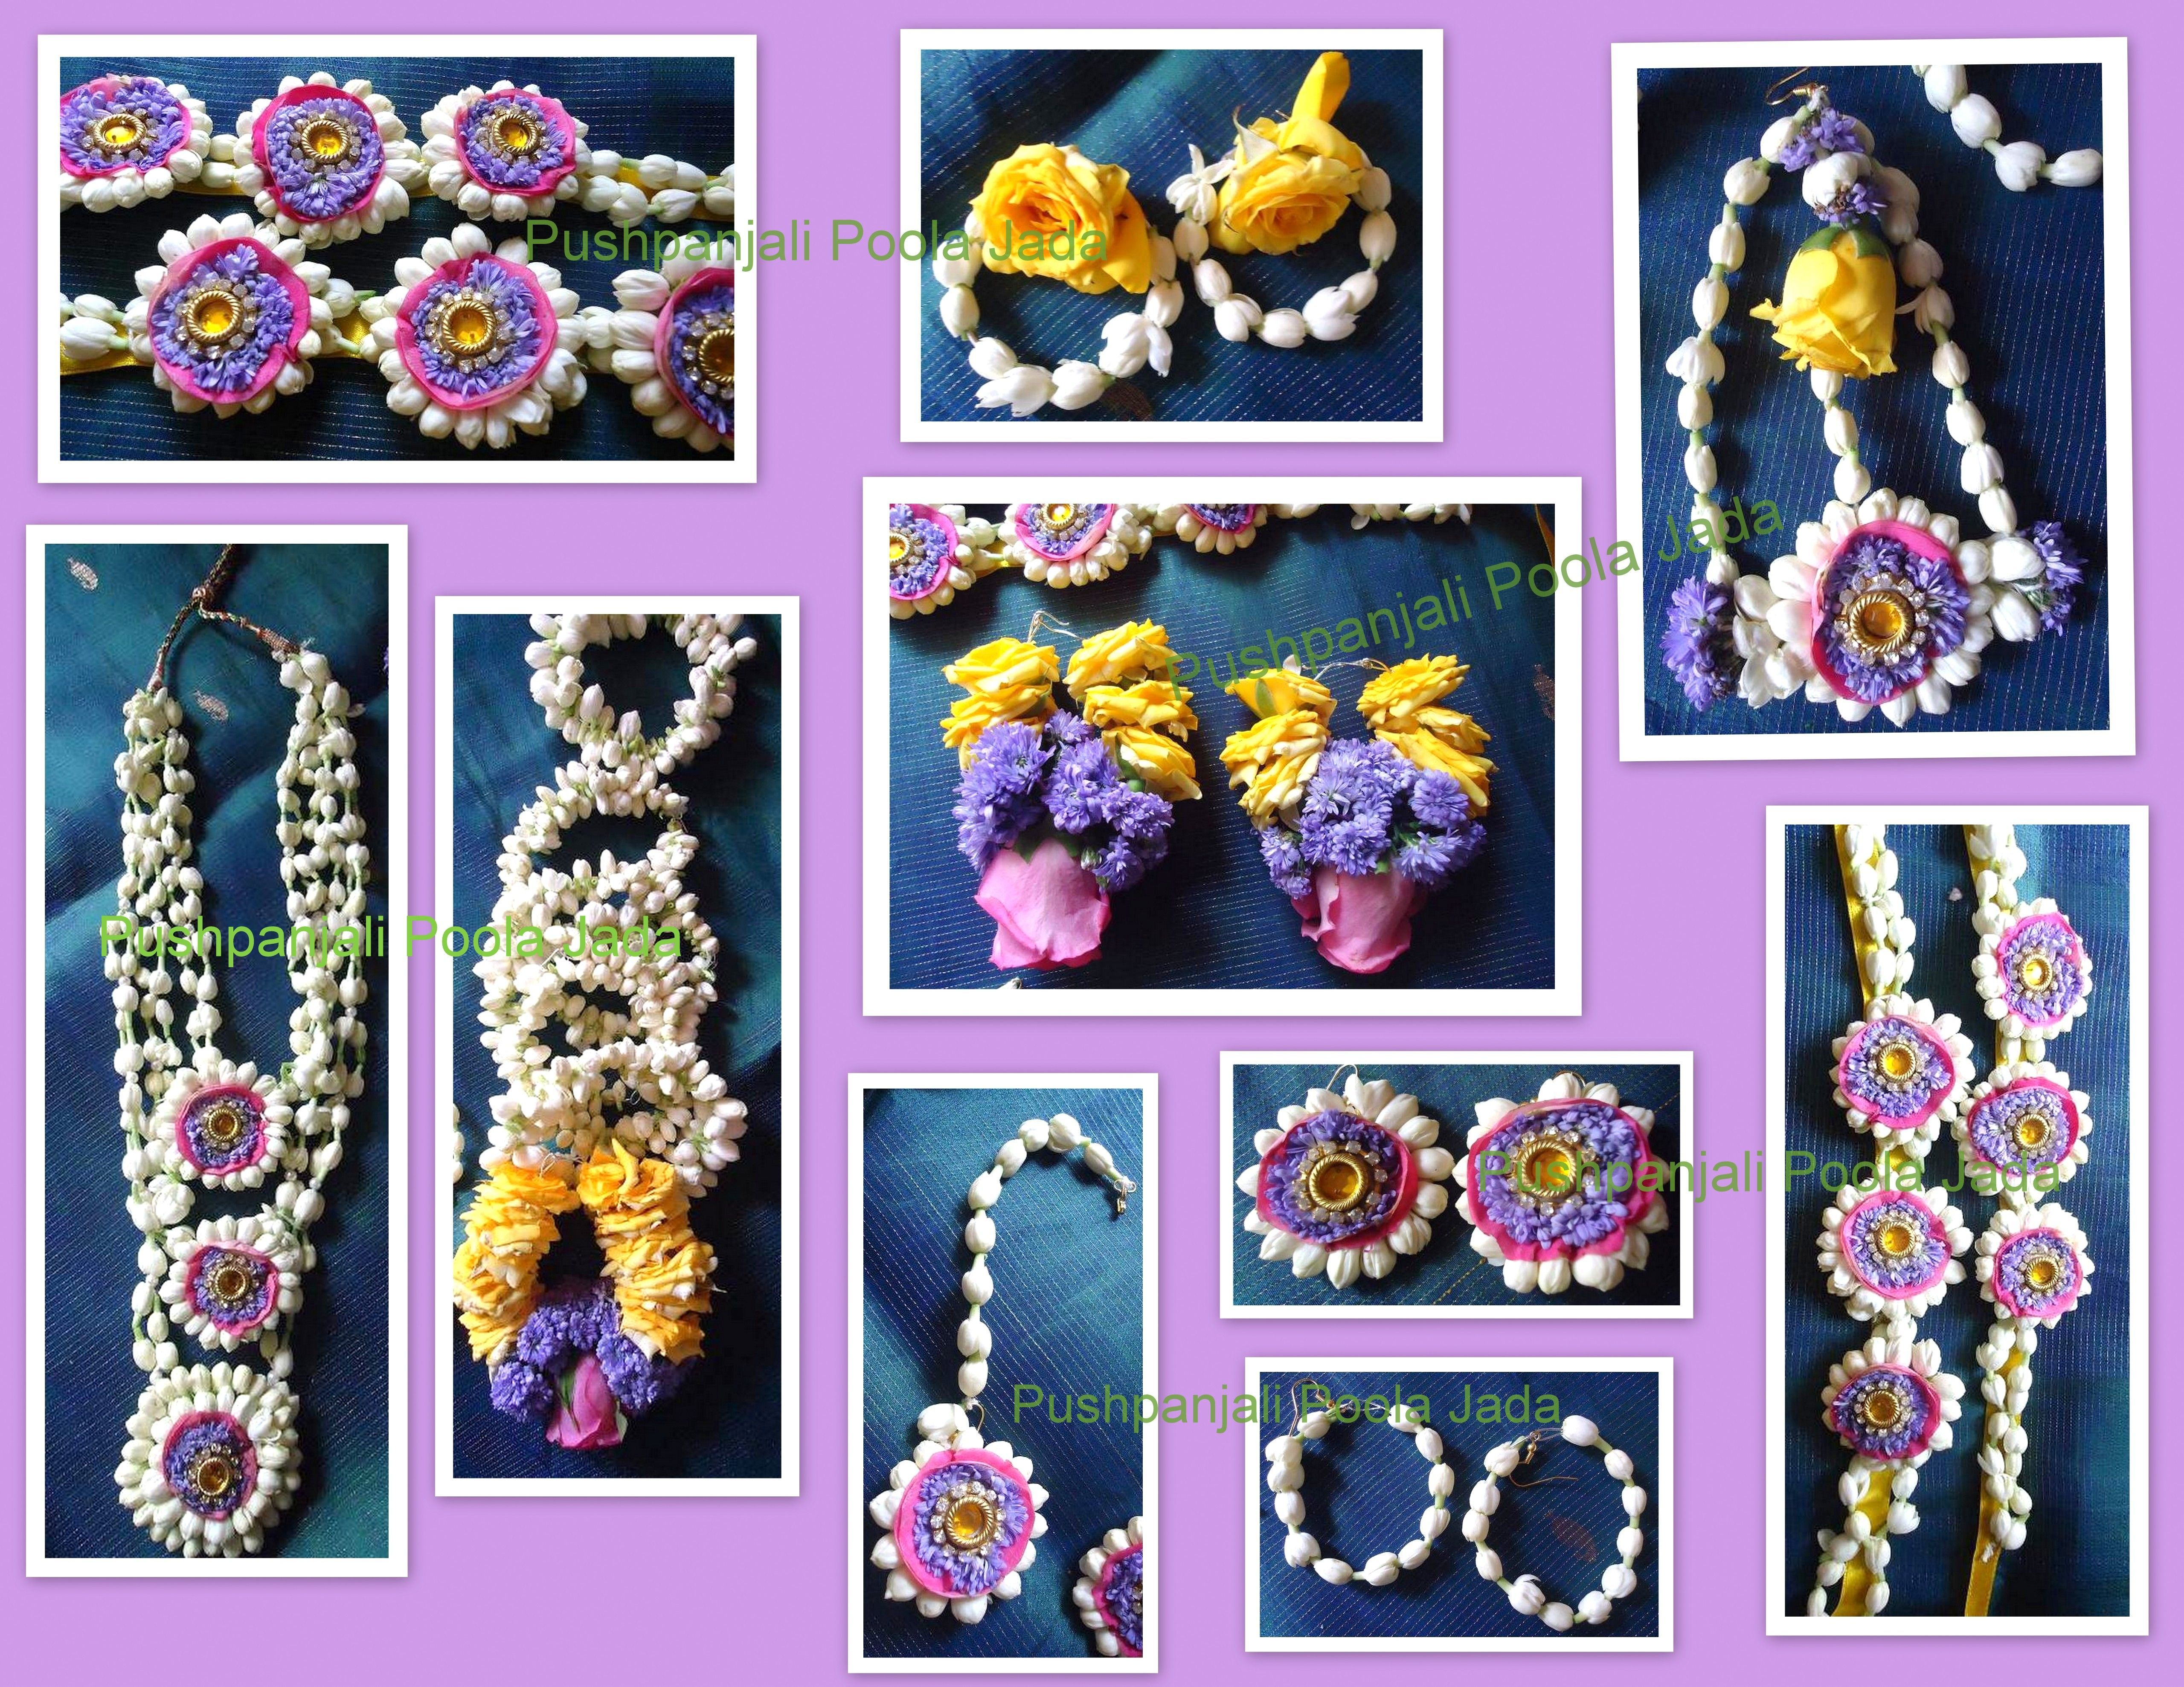 13+ Jewelry made out of flowers ideas